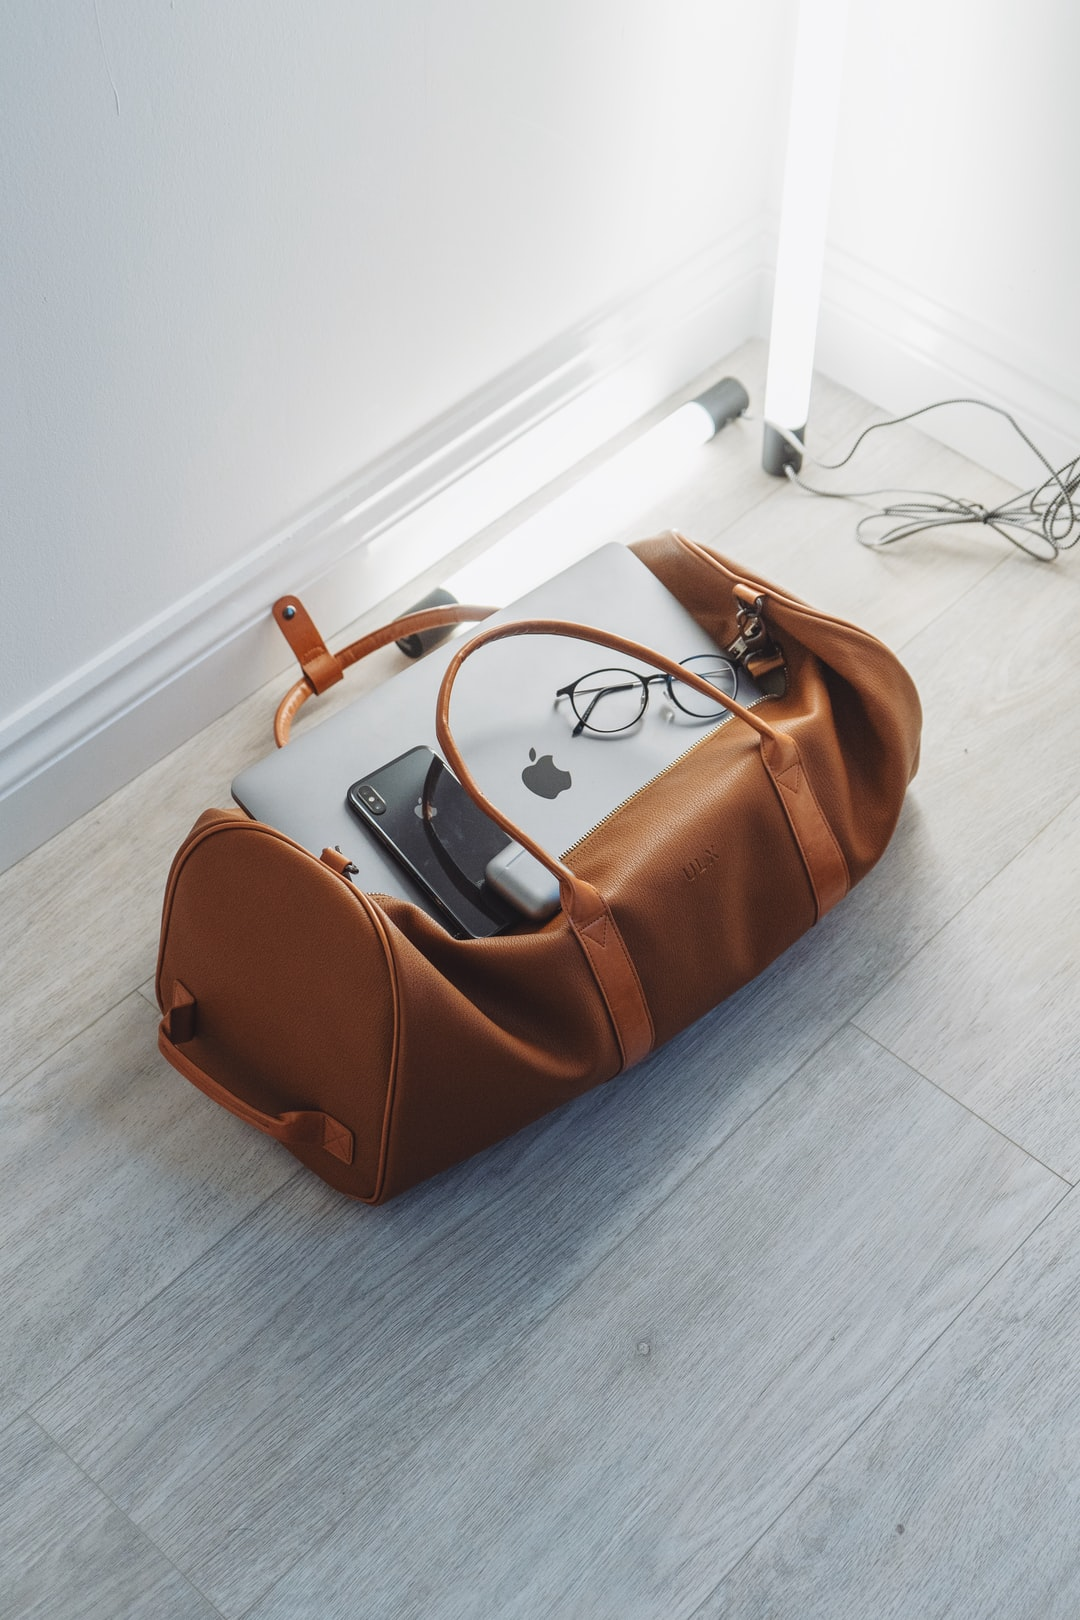 Pack Essentials in your Carry On